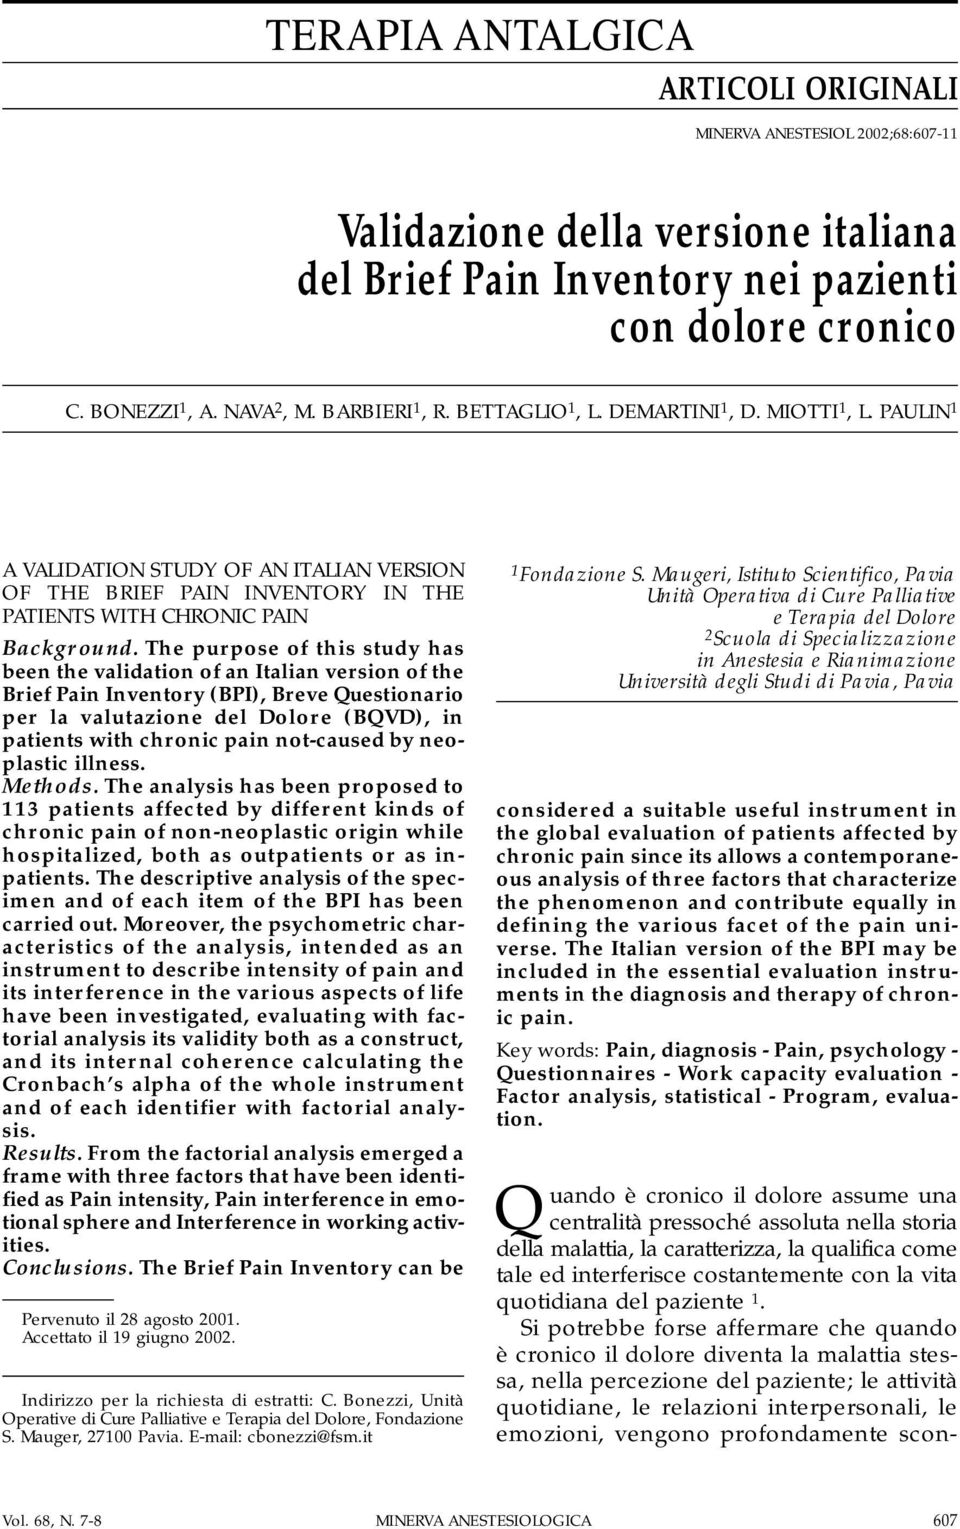 The purpose of this study has been the validation of an Italian version of the Brief Pain Inventory (BPI), Breve Questionario per la valutazione del Dolore (BQVD), in patients with chronic pain